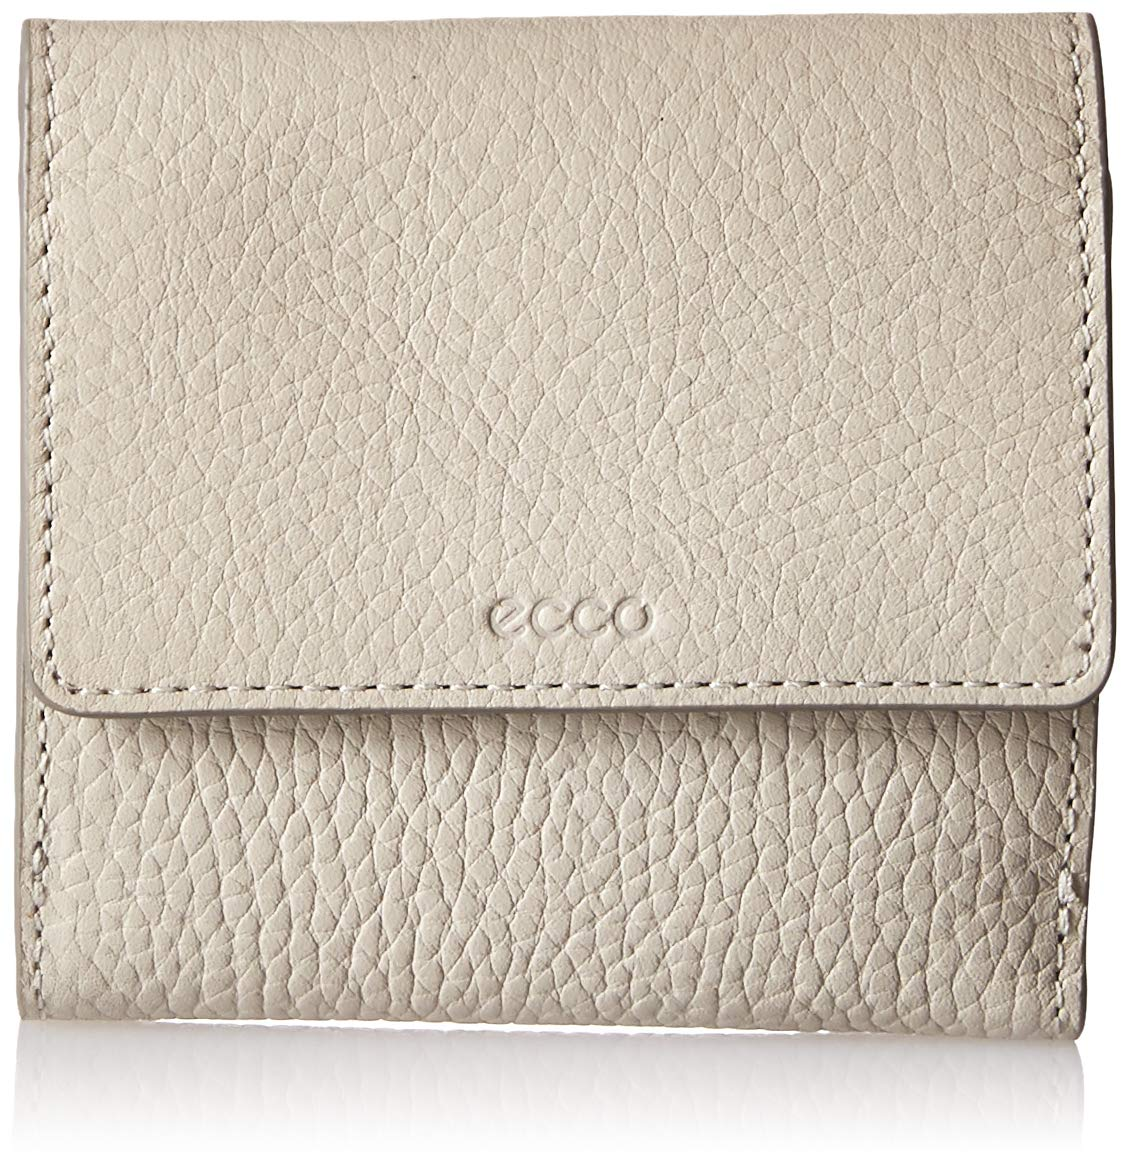 ECCO Sp 3 French Wallet,  Gravel, One Size